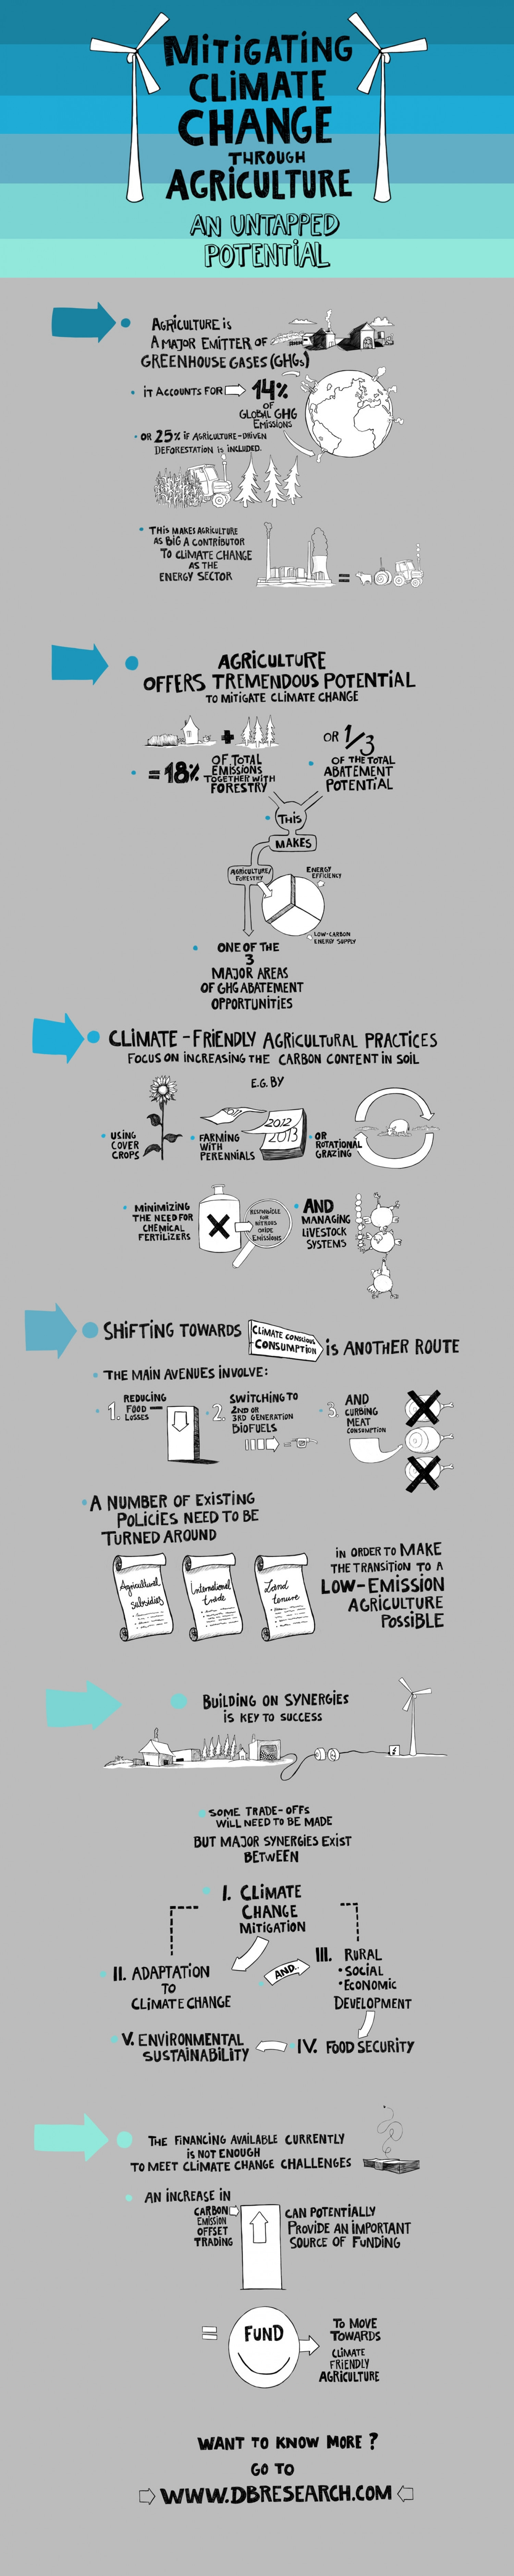 Mitigating Climate Change Infographic